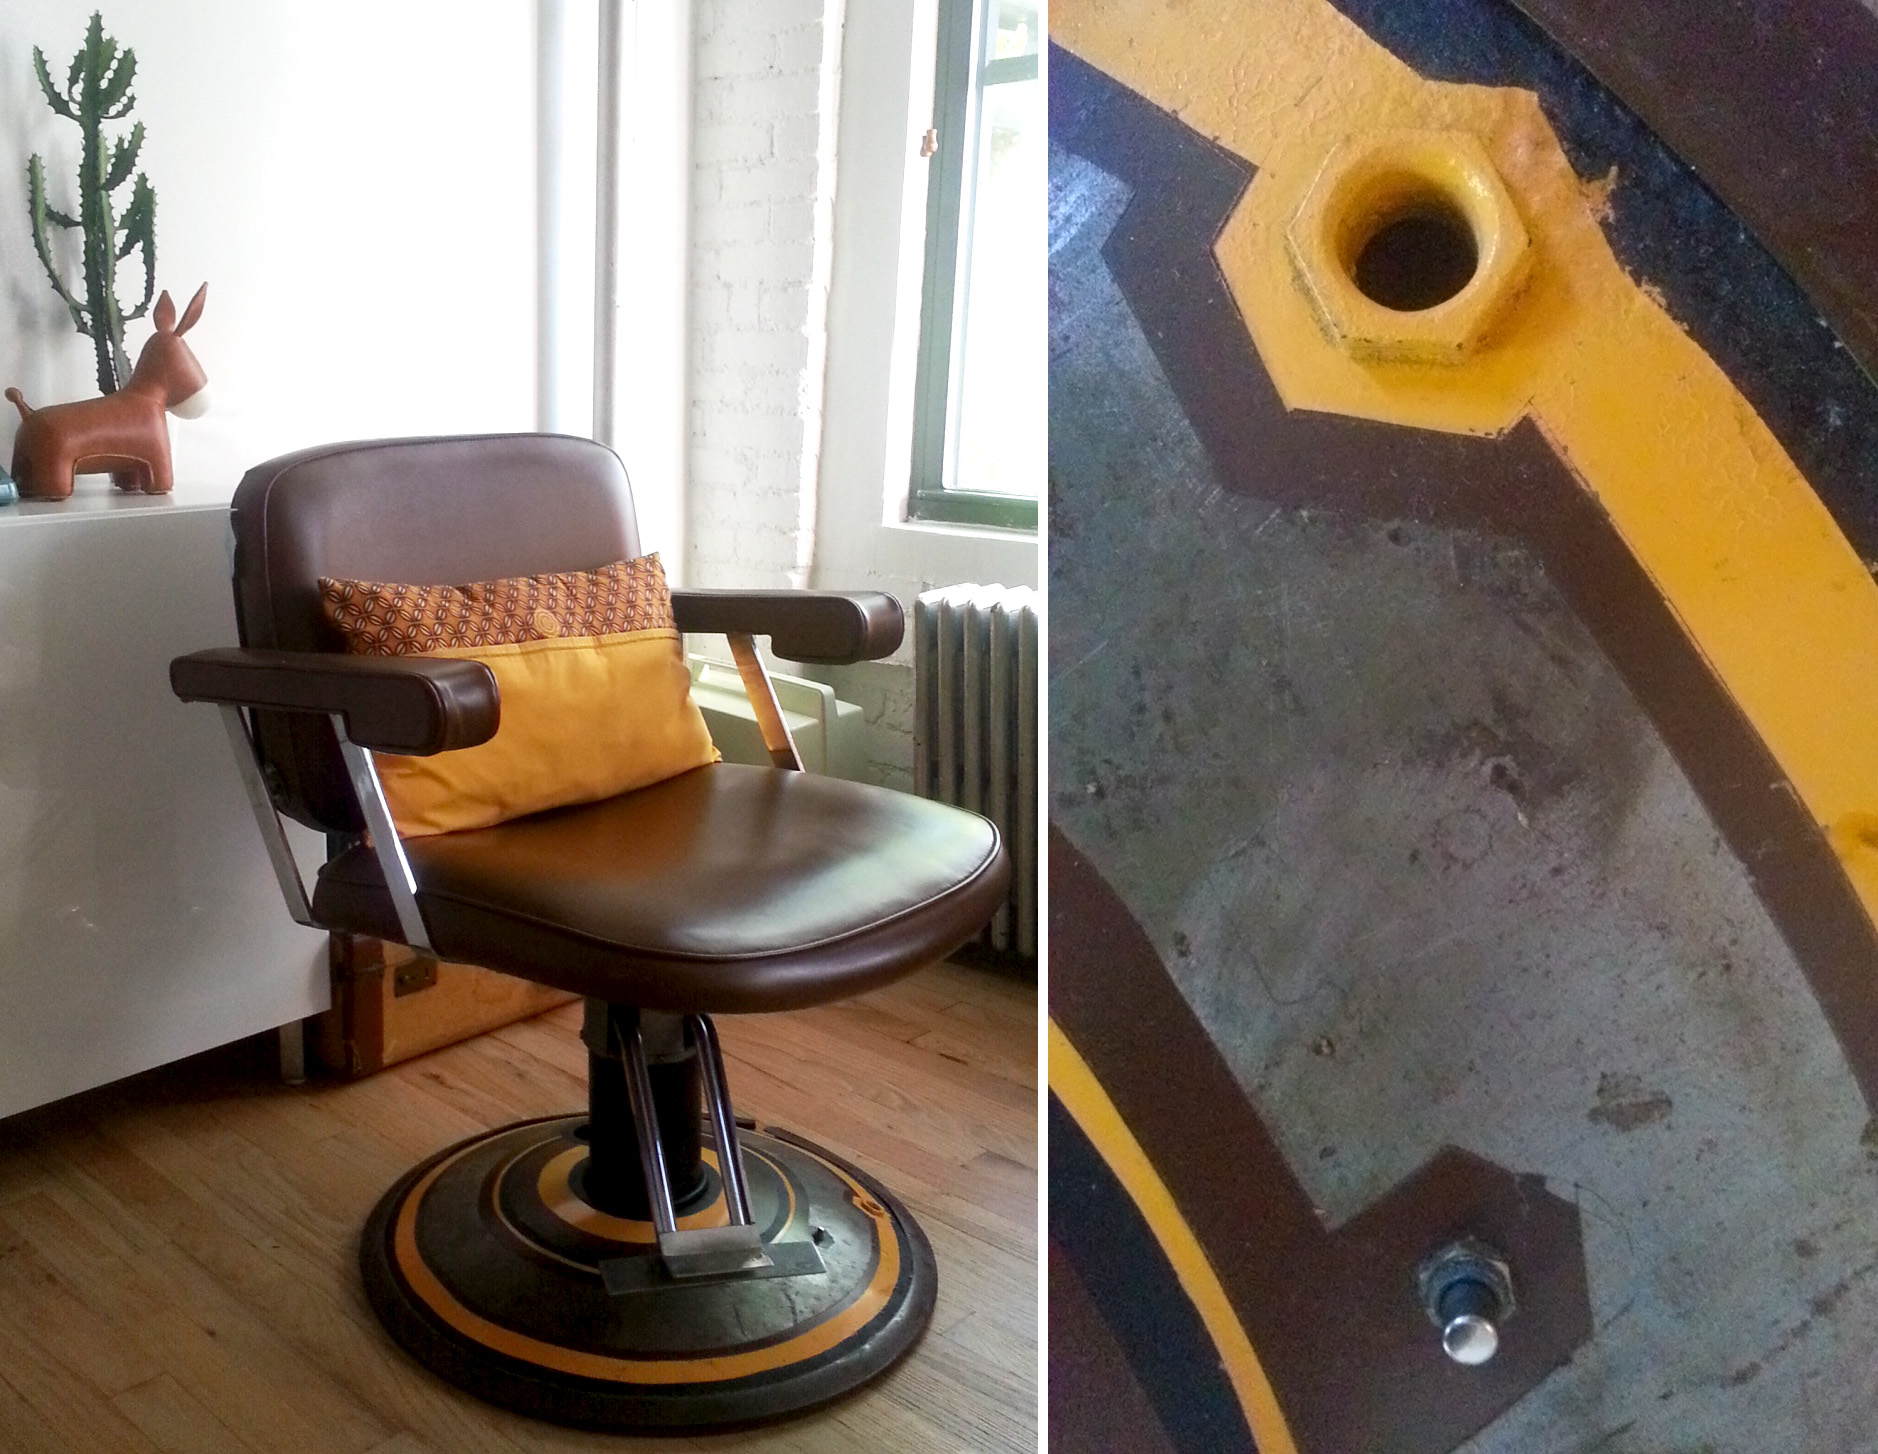 REFURBISHMENT OF THE PINK BARBER CHAIR